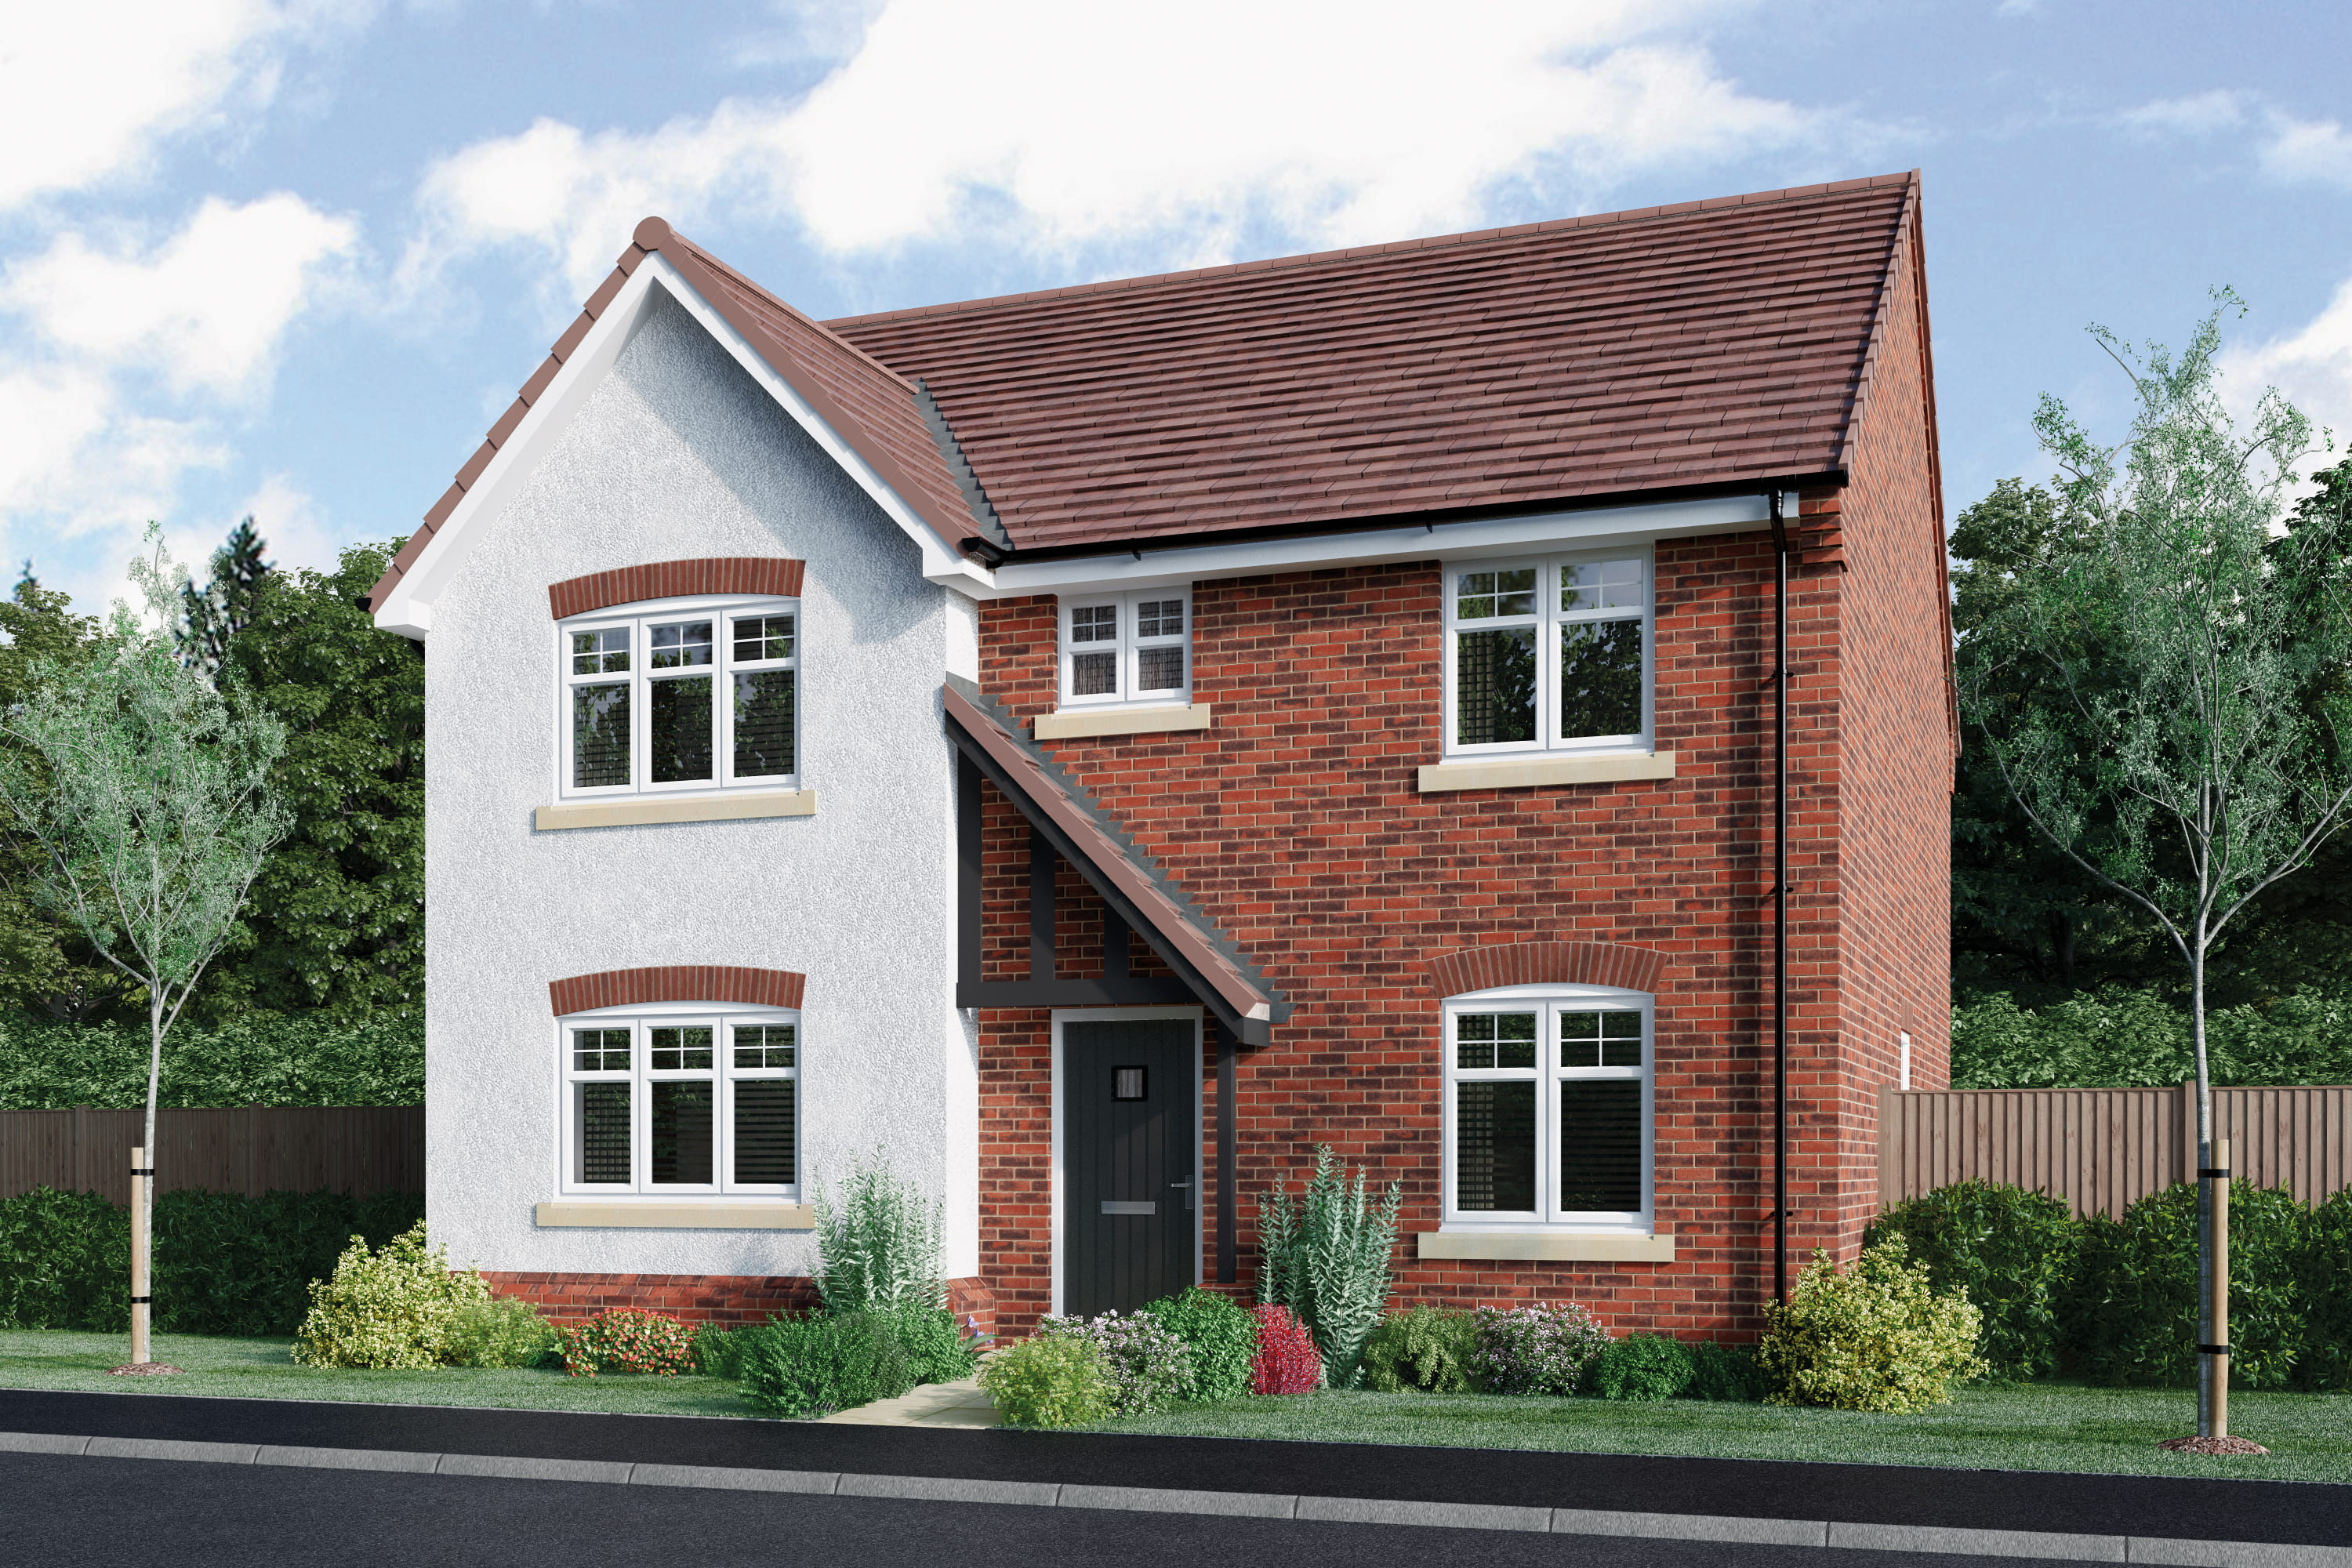 Astwood   4 bedroom house for sale in Solihull